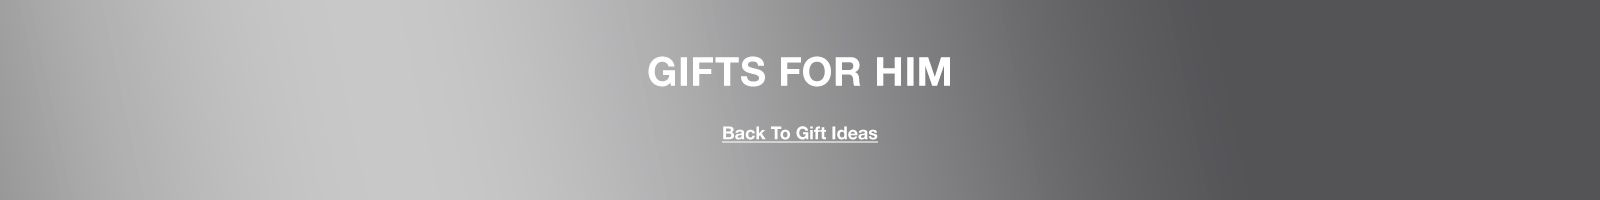 Gifts For Him, Back to Gift Ideas